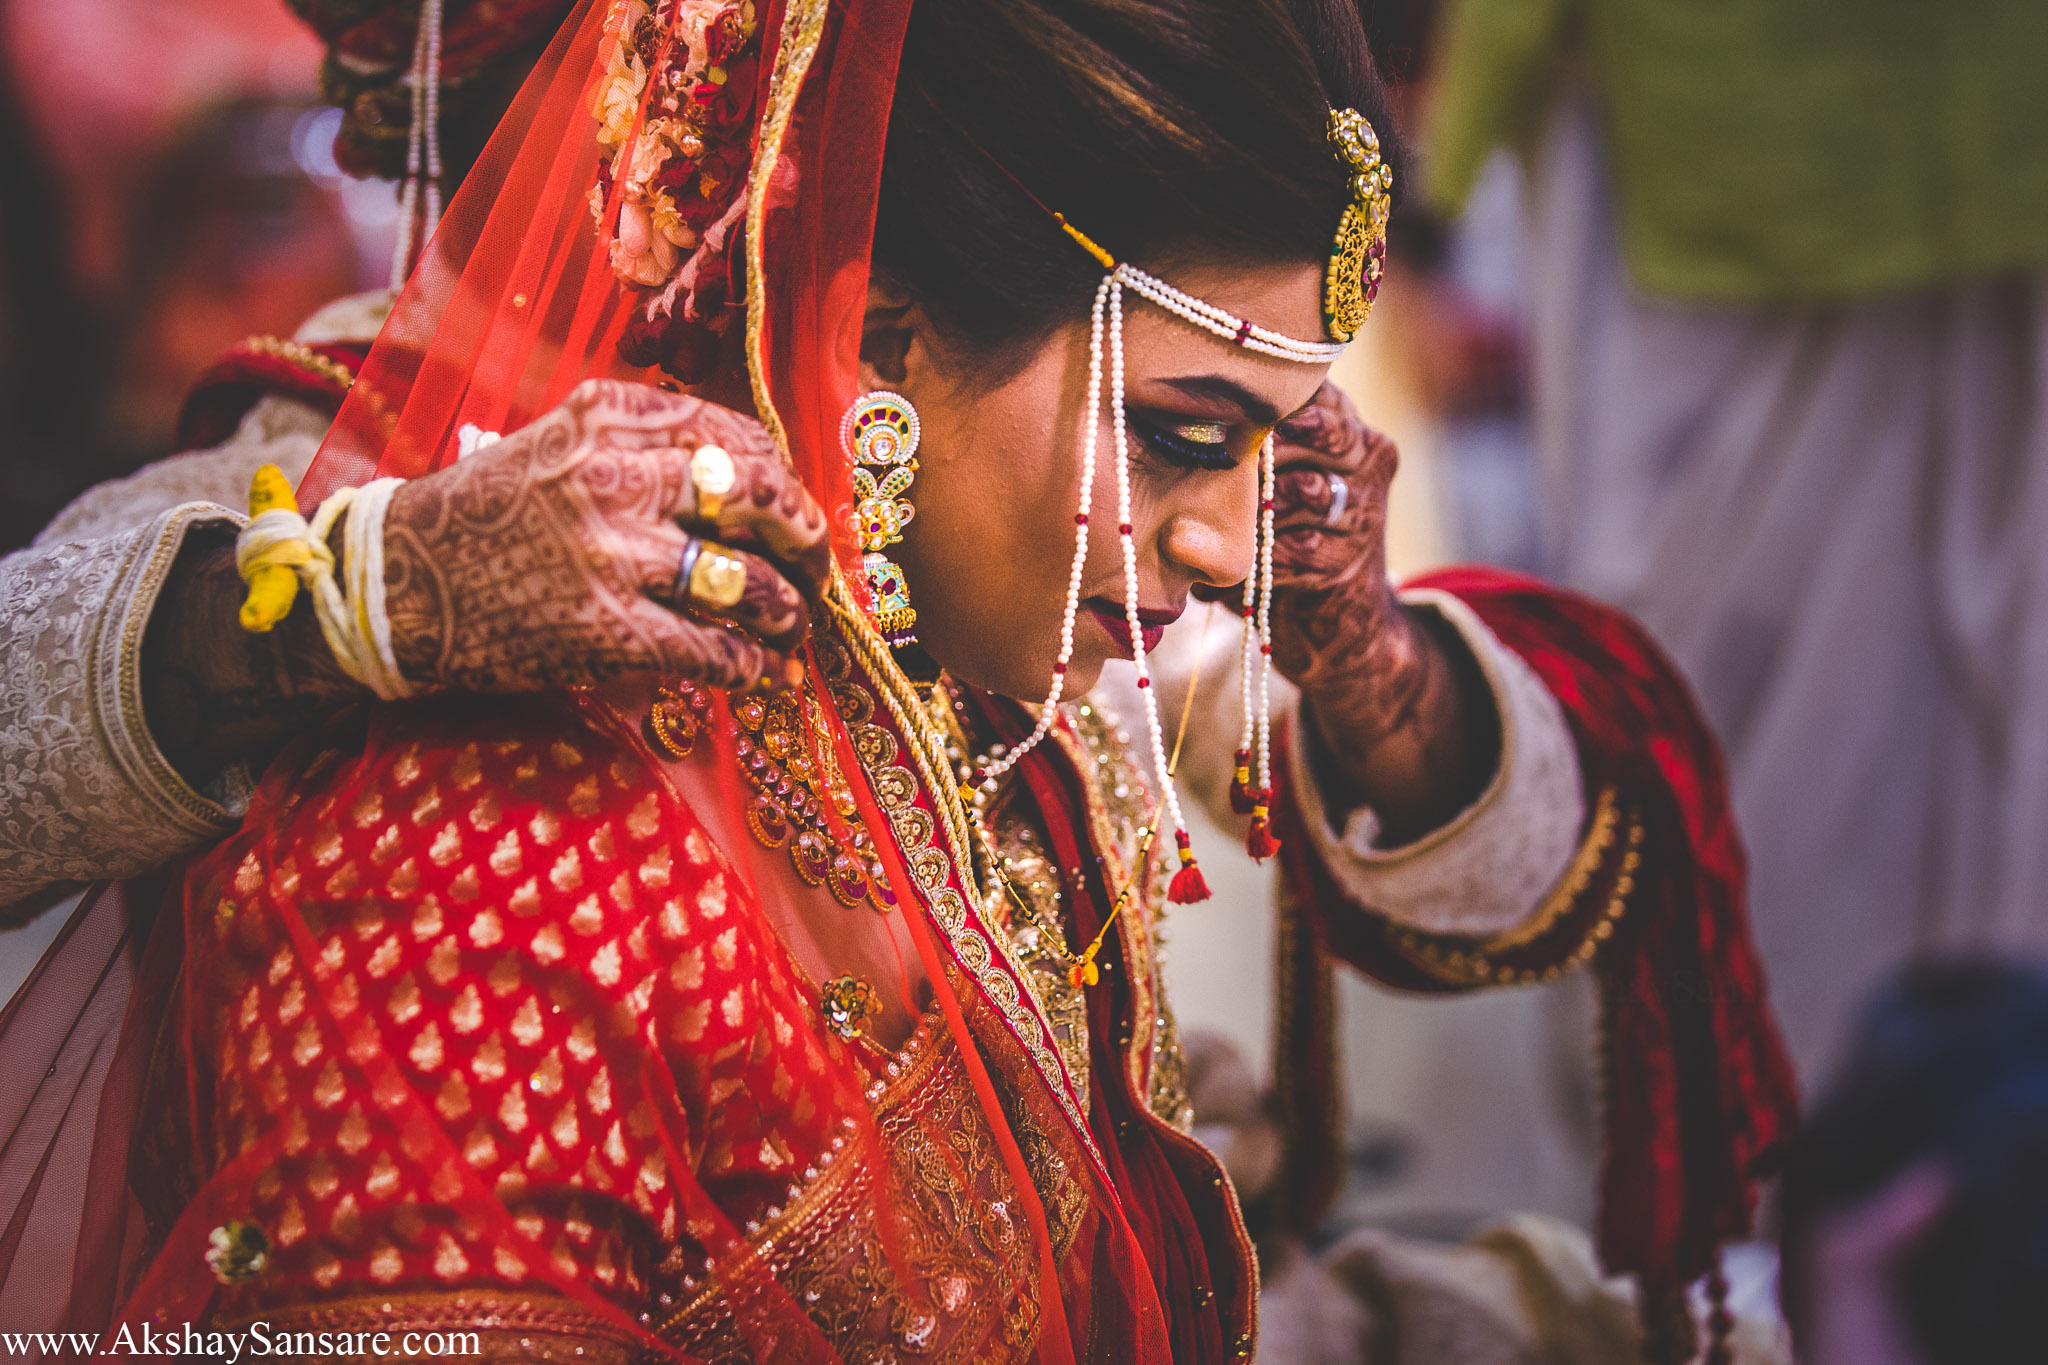 Ajay & Devika Akshay Sansare Photography Best Candid wedding photographer in mumbai india31.jpg